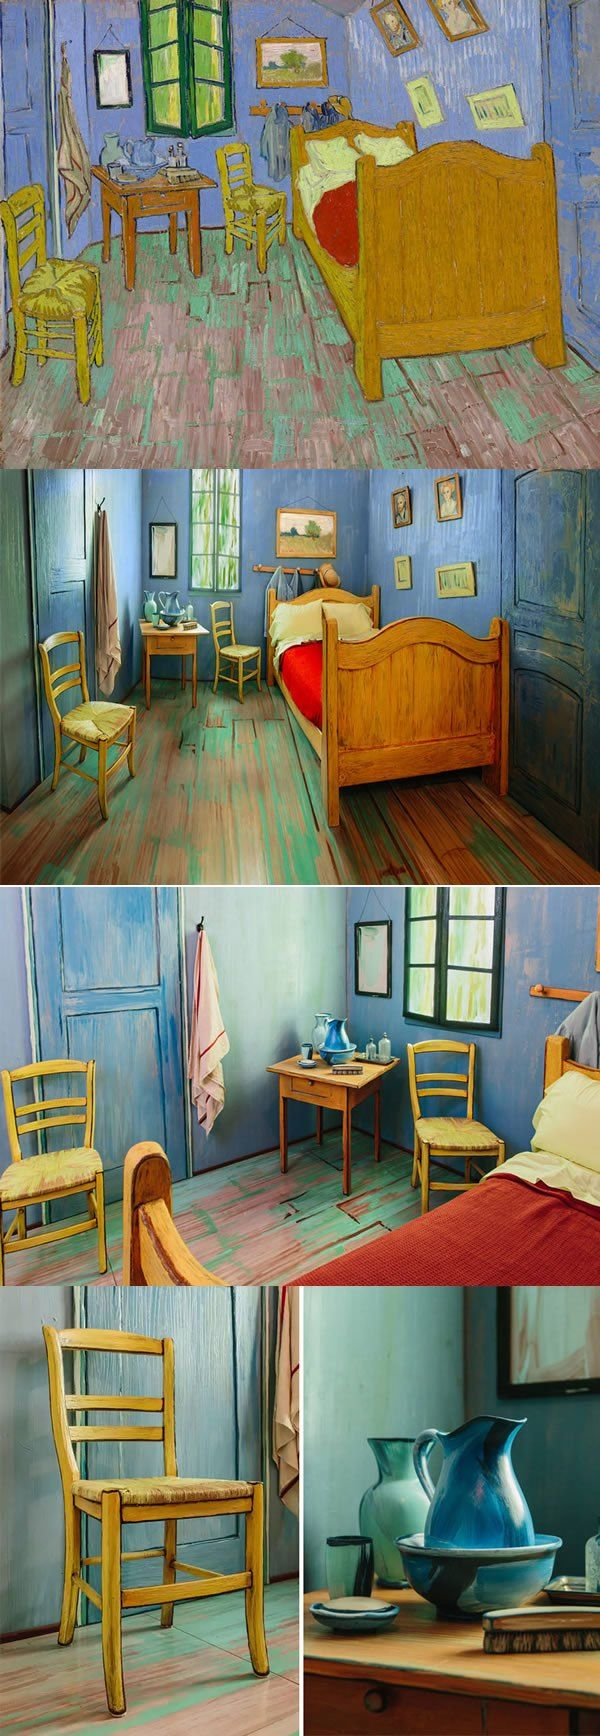 17 best ideas about bedroom in arles on pinterest | van gogh art